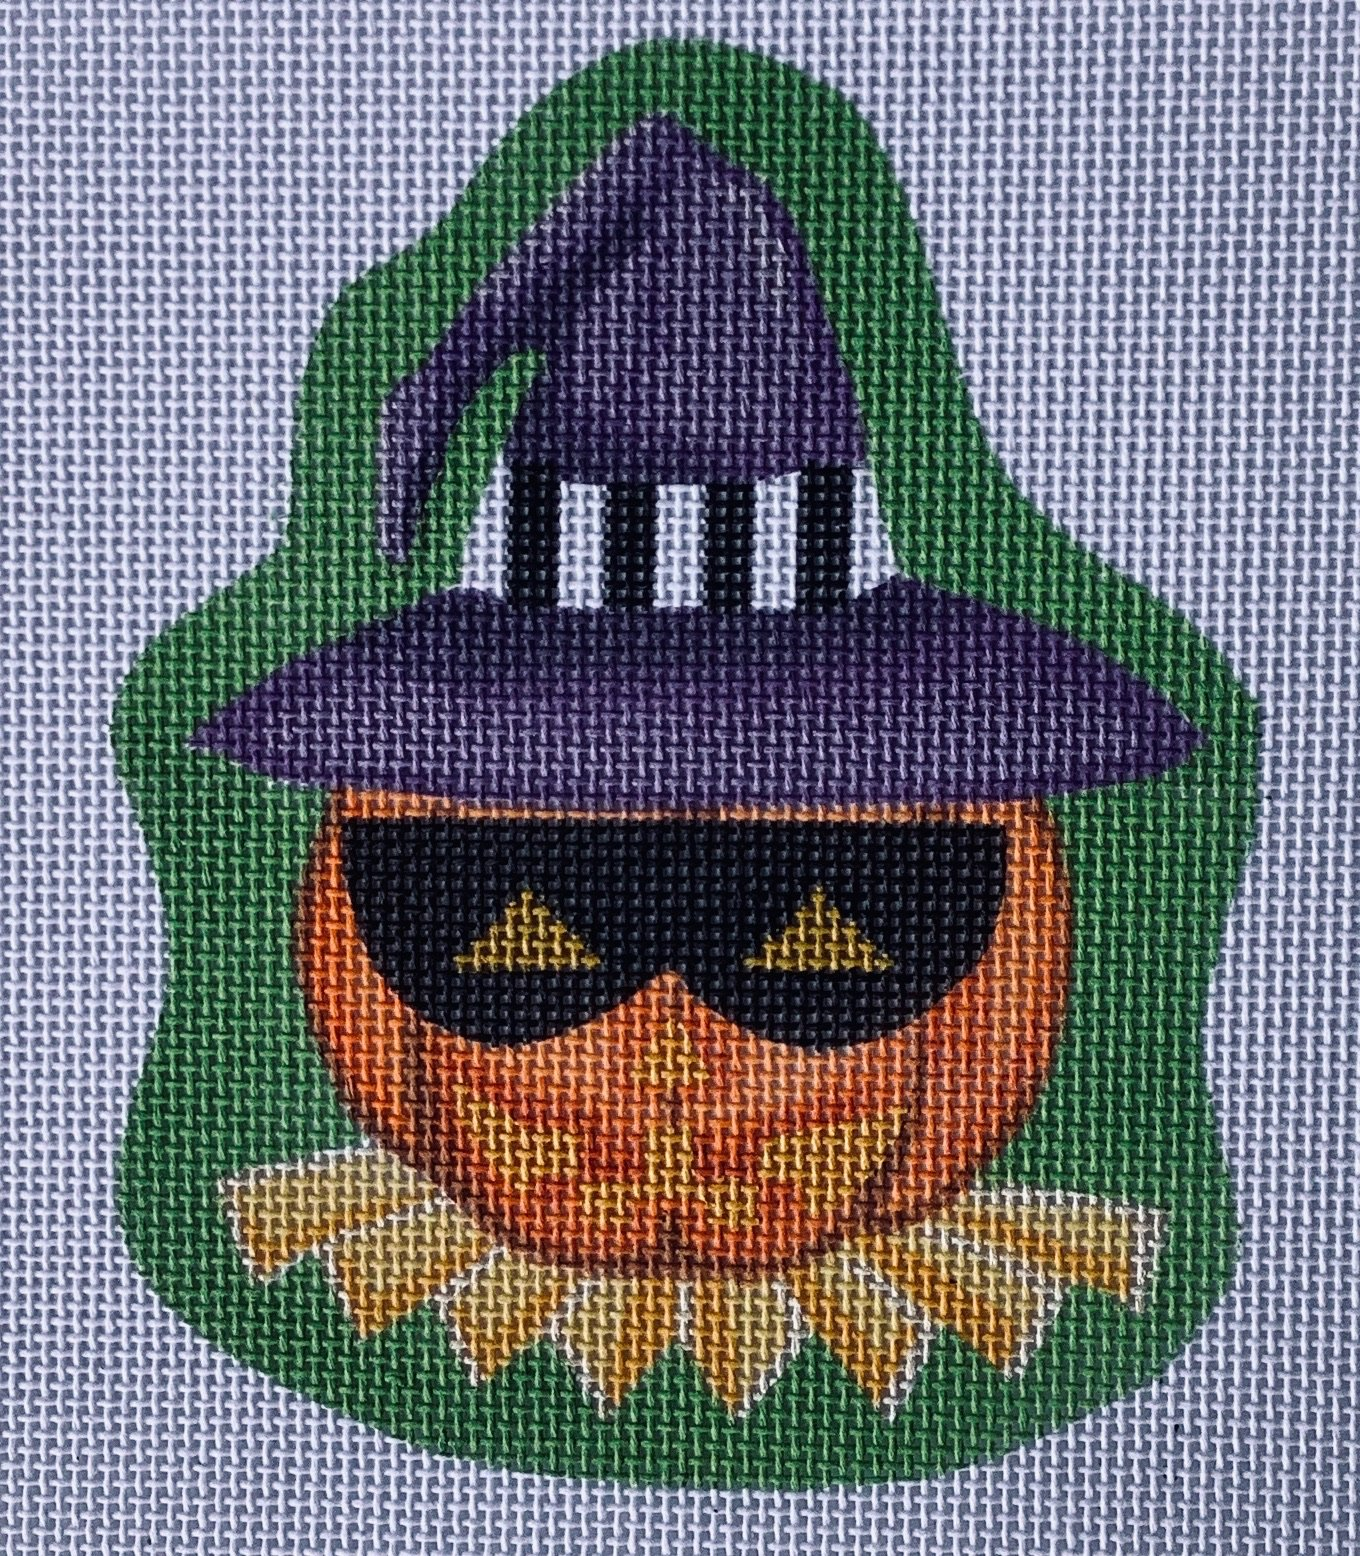 PDHWL01 Masked Jack O'Lantern with Stitch Guide Halloween Ornament Pepperberry Designs